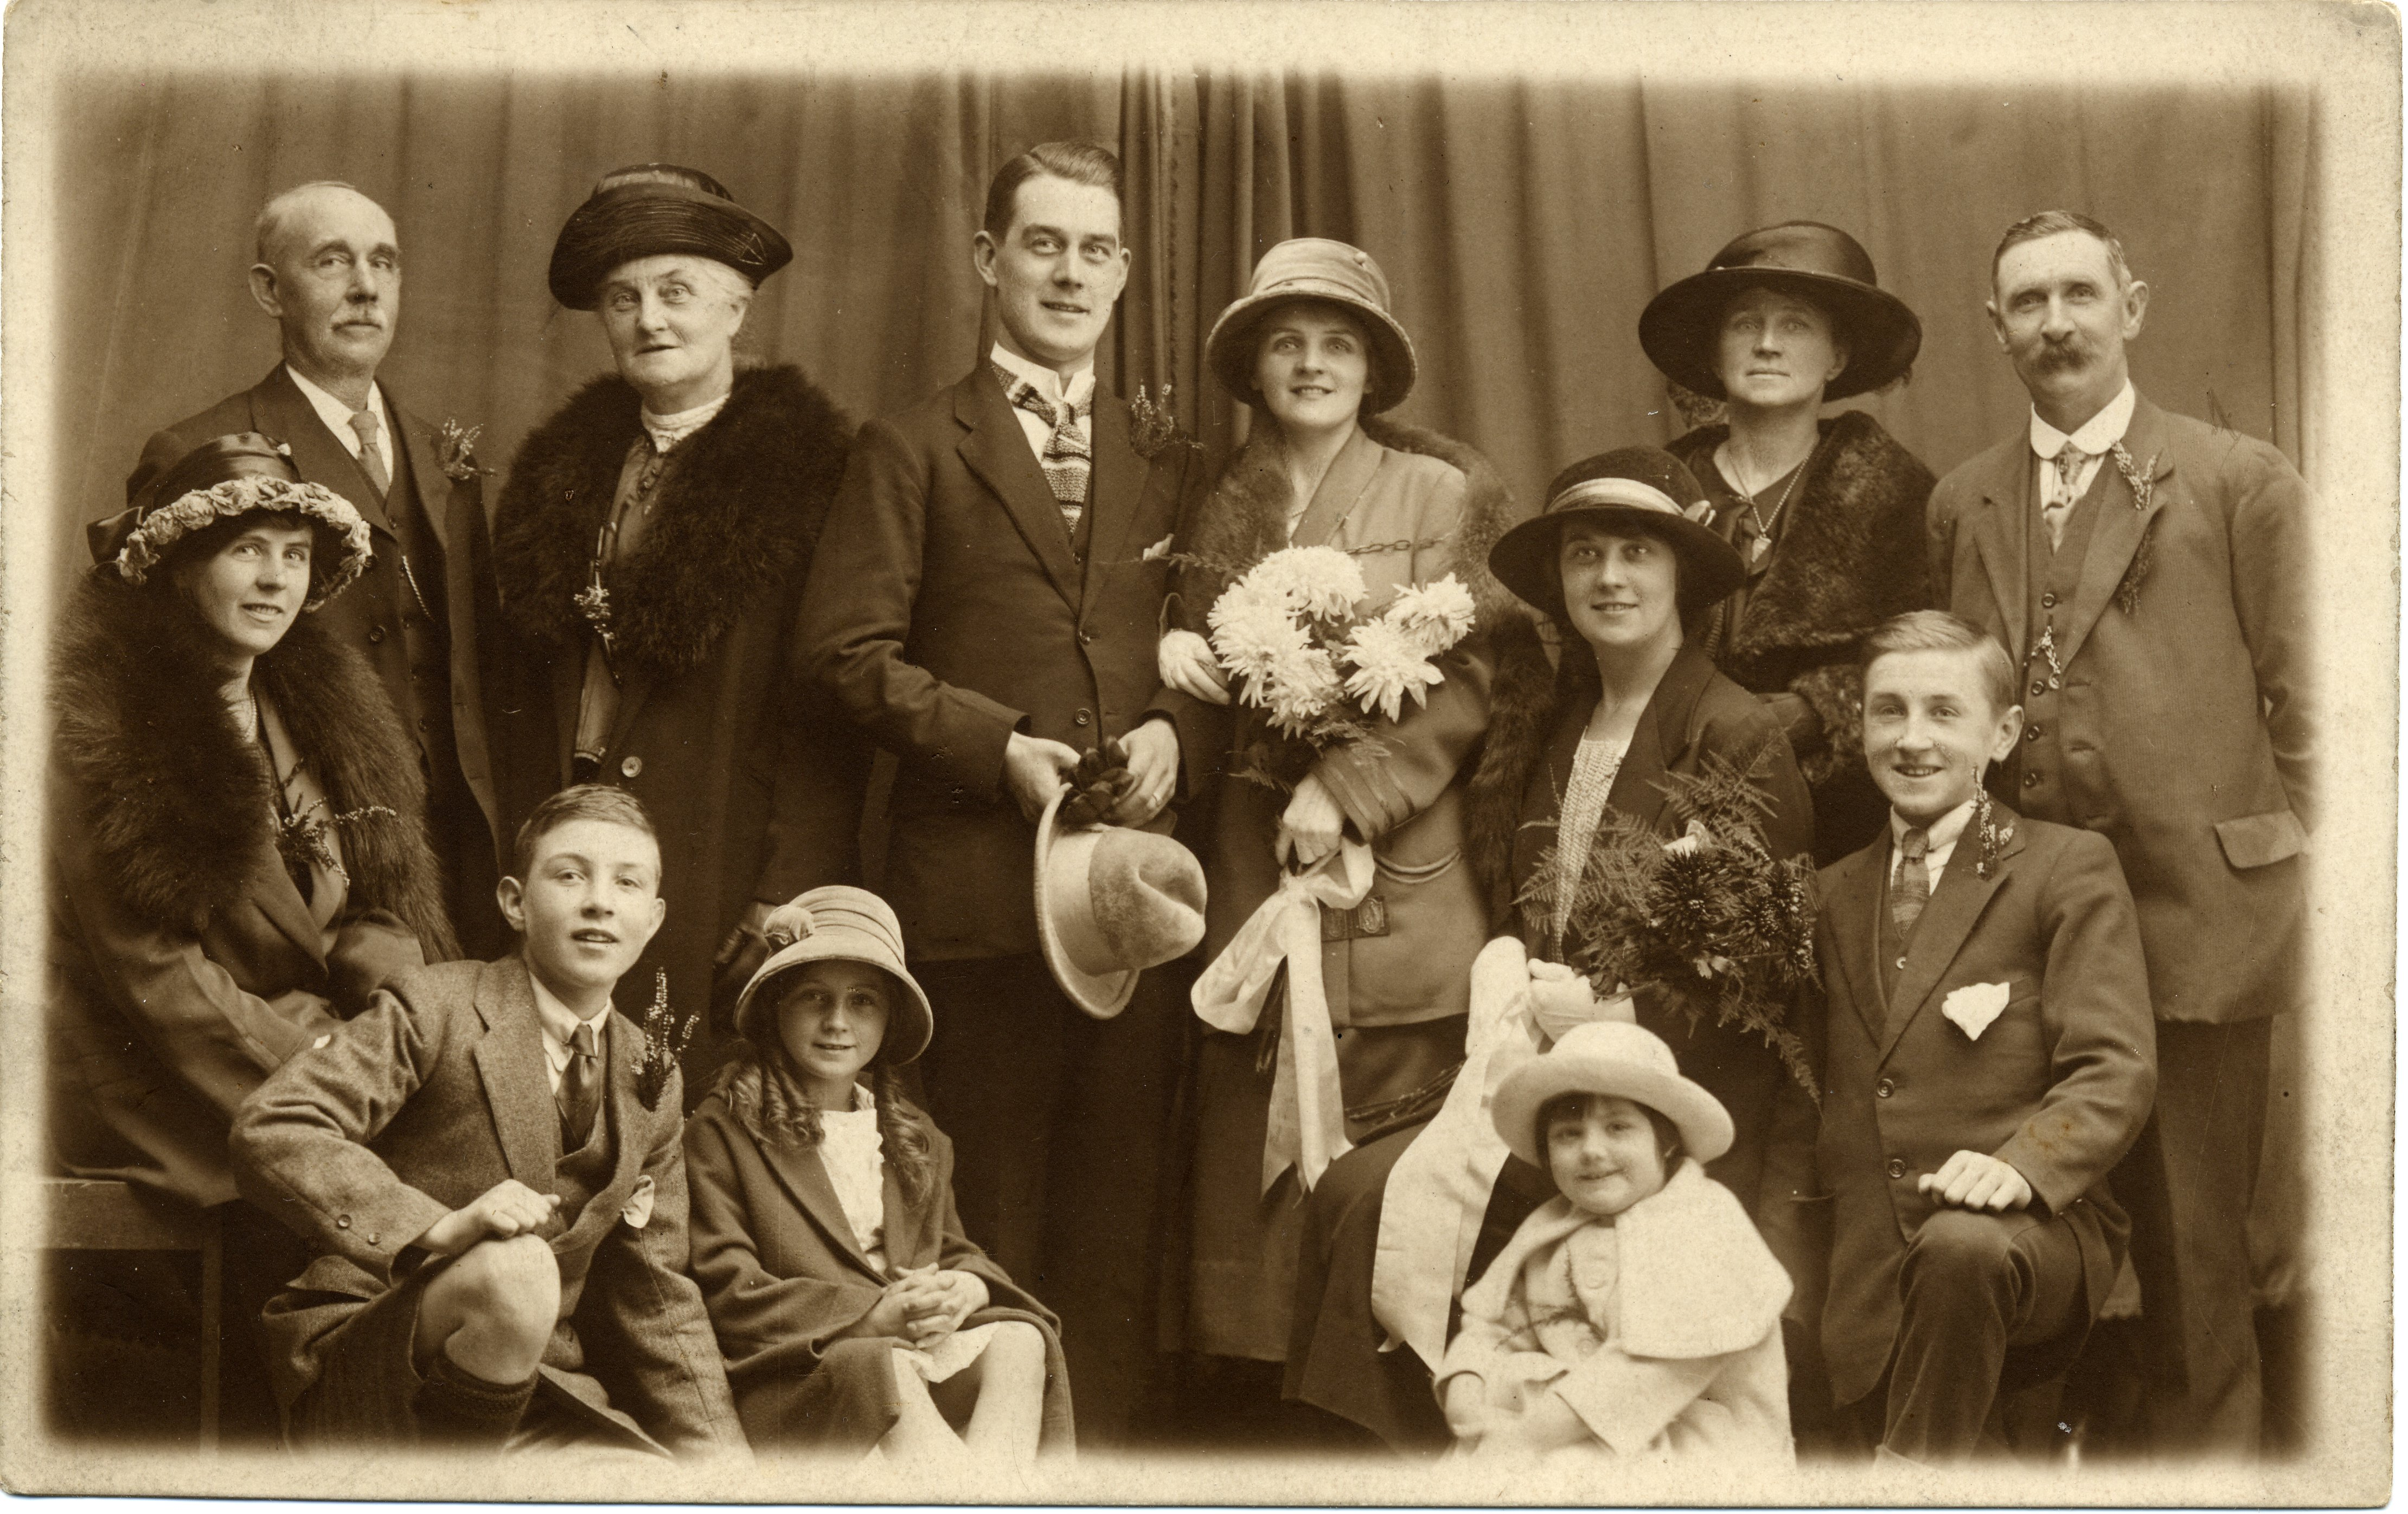 Isabel Bagnall marries Joe Marsh 20/10/1923